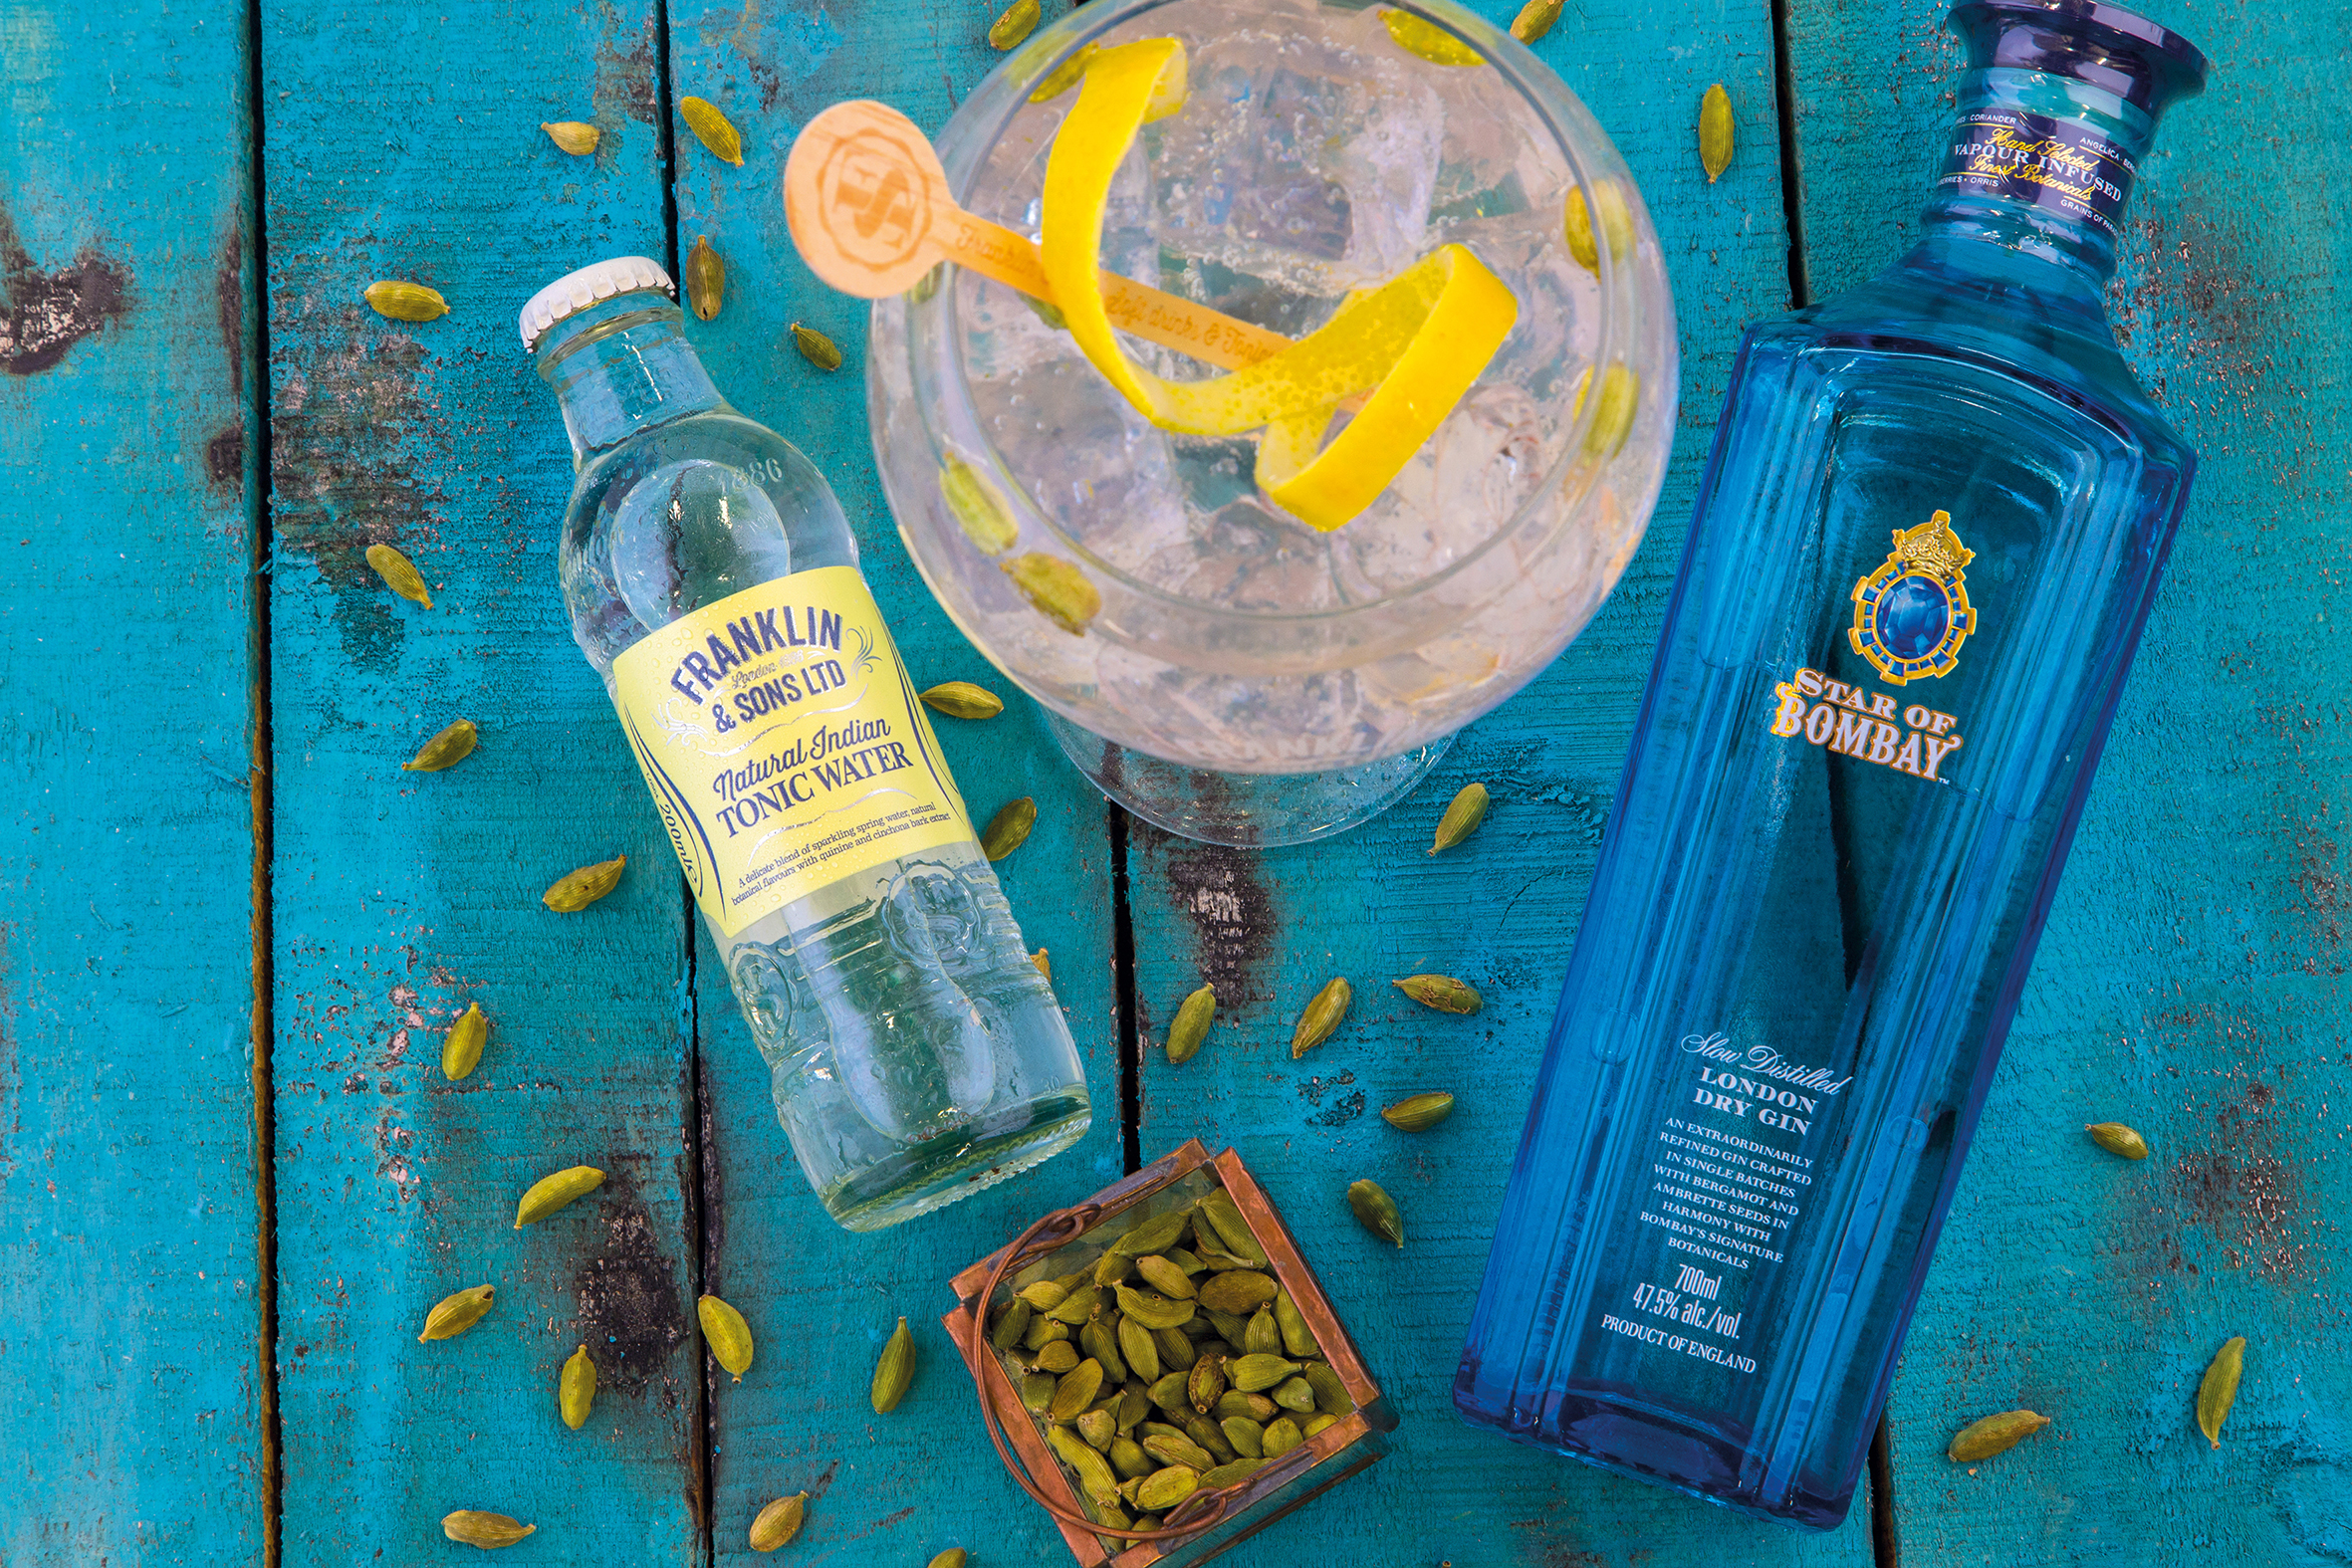 Star of Bombay & Natural Indian Tonic Water